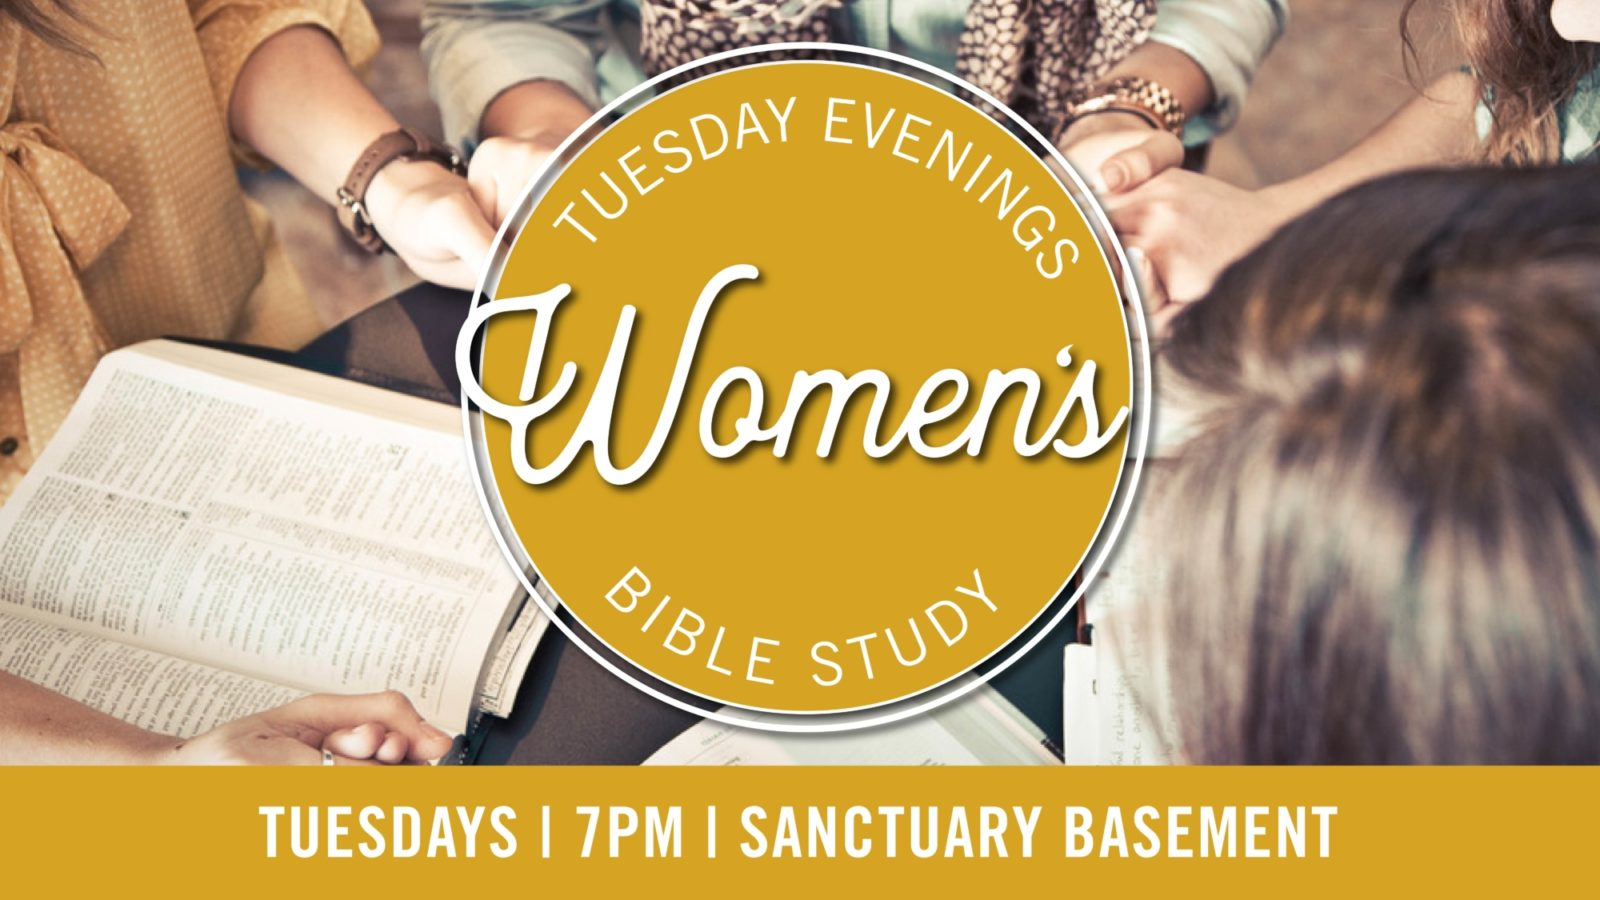 Tuesday Evening Women's Bible Study